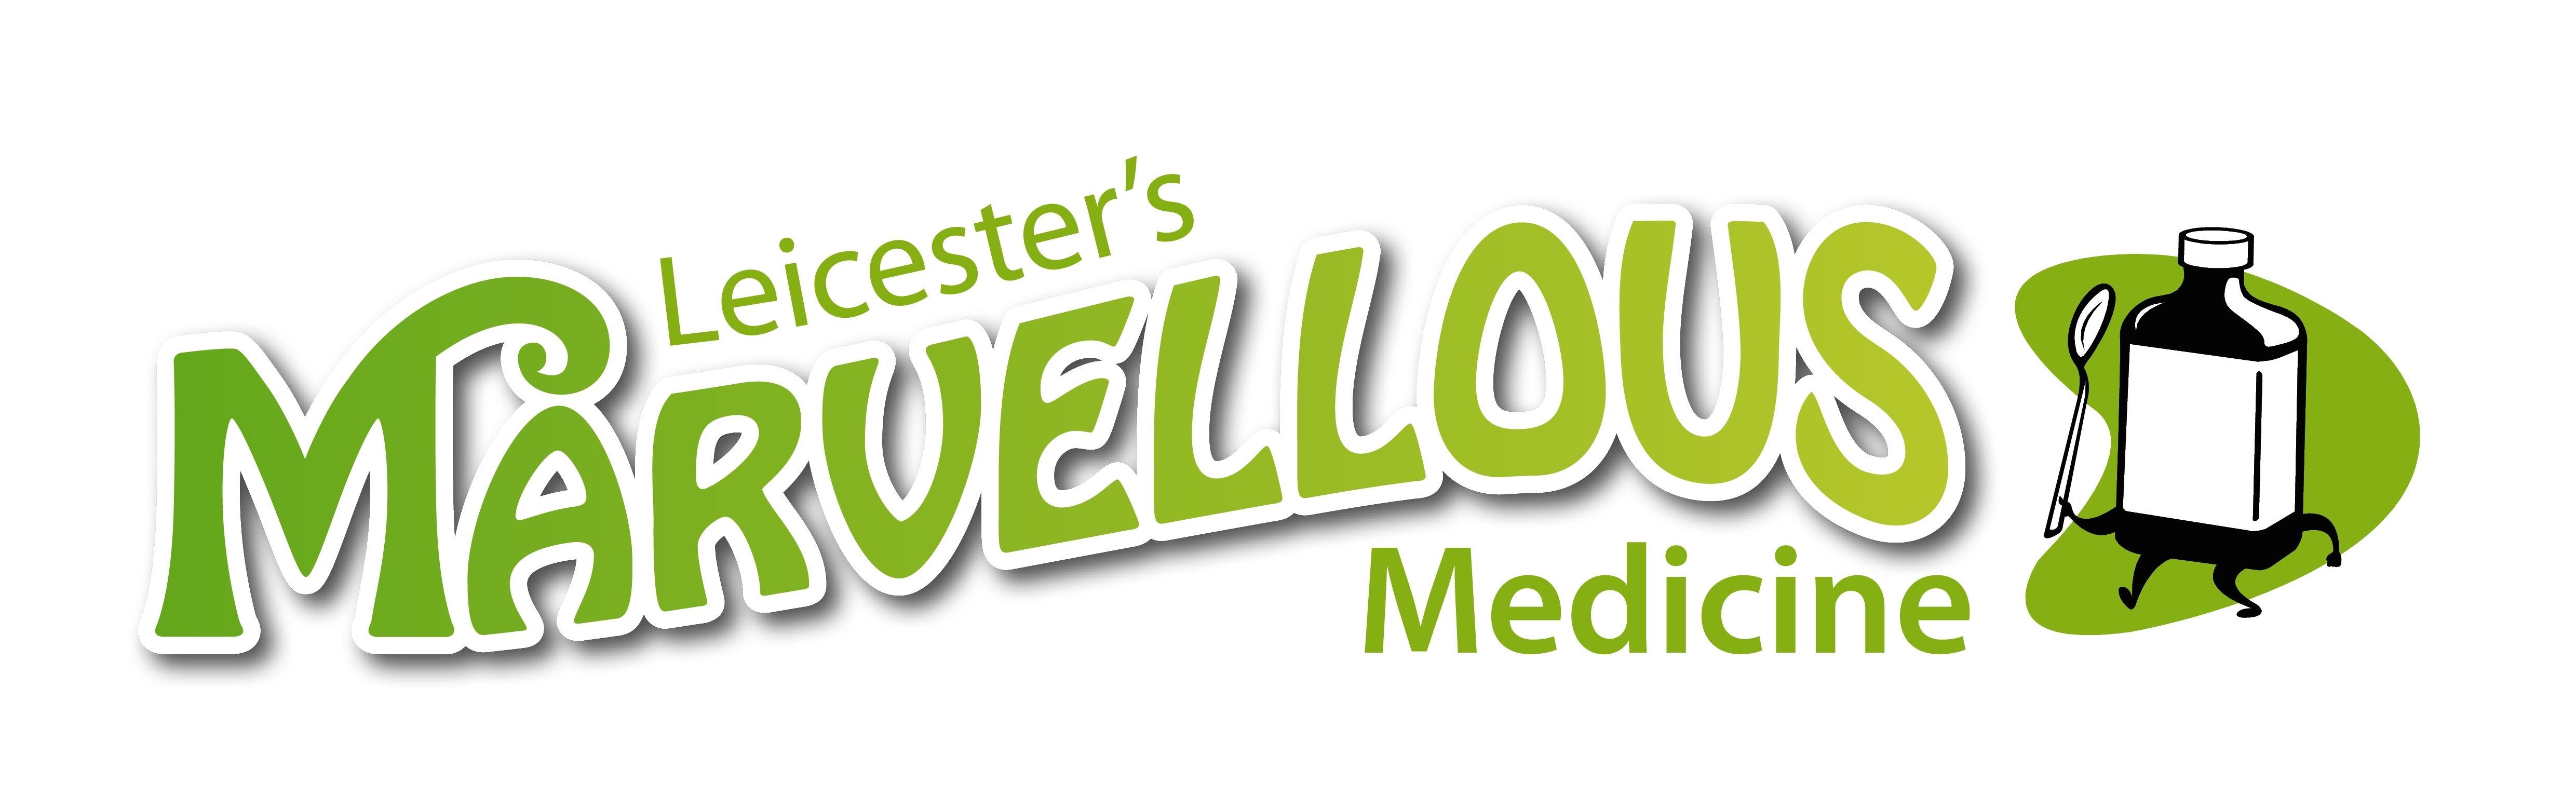 Leicester's Marvellous Medicine Talks! Find out abour our upcoming talks: http://www.leicestershospitals.nhs.uk/aboutus/our-news/marvellous-medicine-2015/